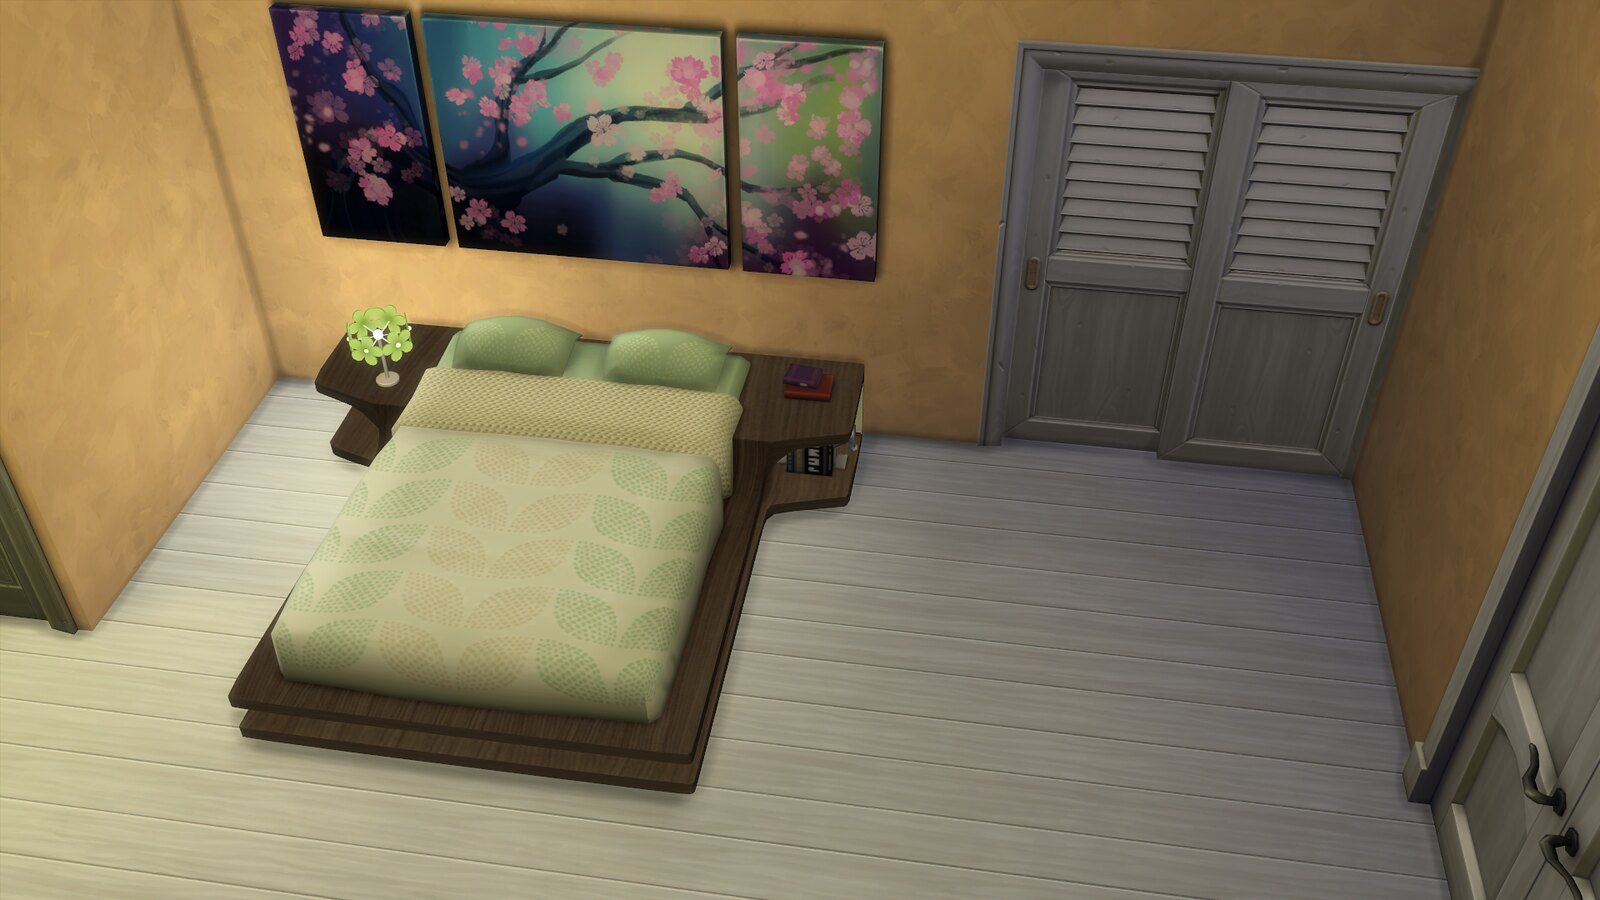 I Ve Been Placing Walk In Closets All Wrong The Sims Forums,Very Small Narrow Bathroom Ideas